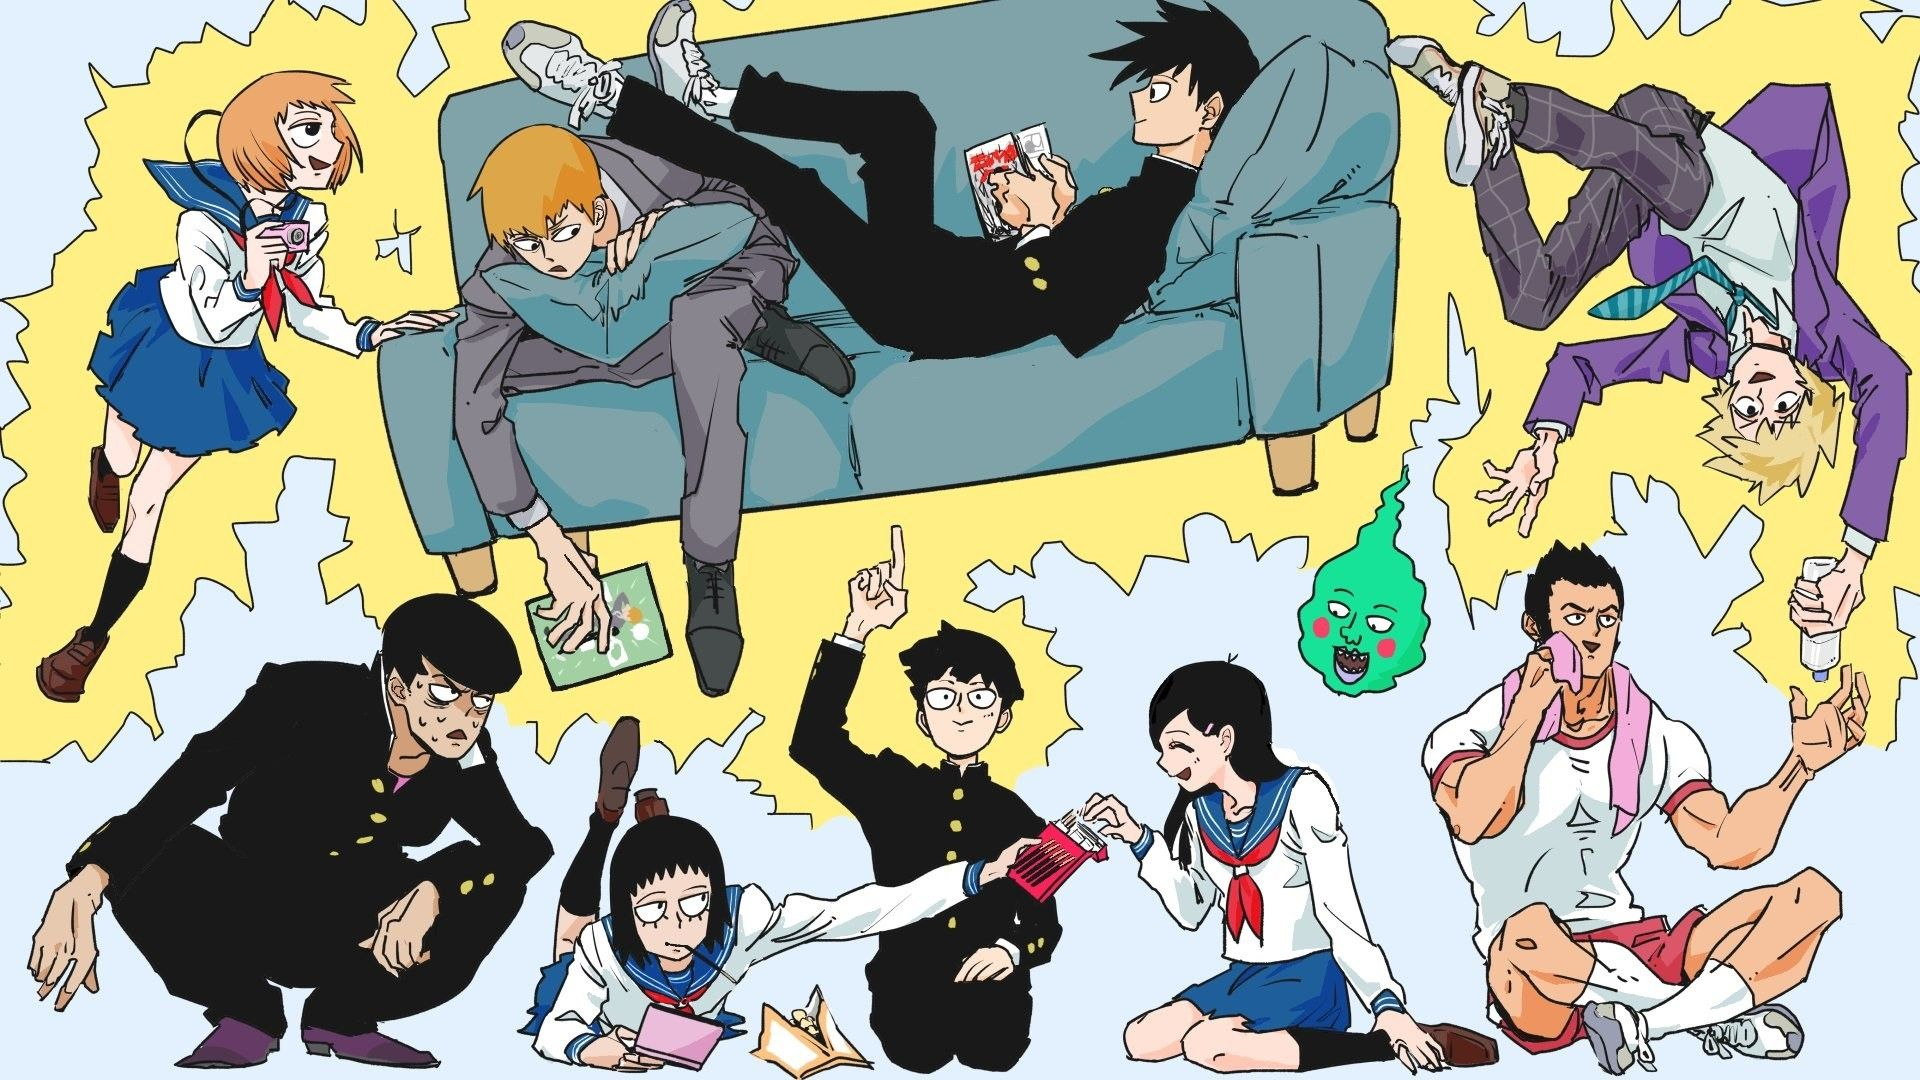 Pin By Teamato On Cool Anime Dudes Mob Psycho 100 Wallpaper Mob Psycho 100 Mob Psycho